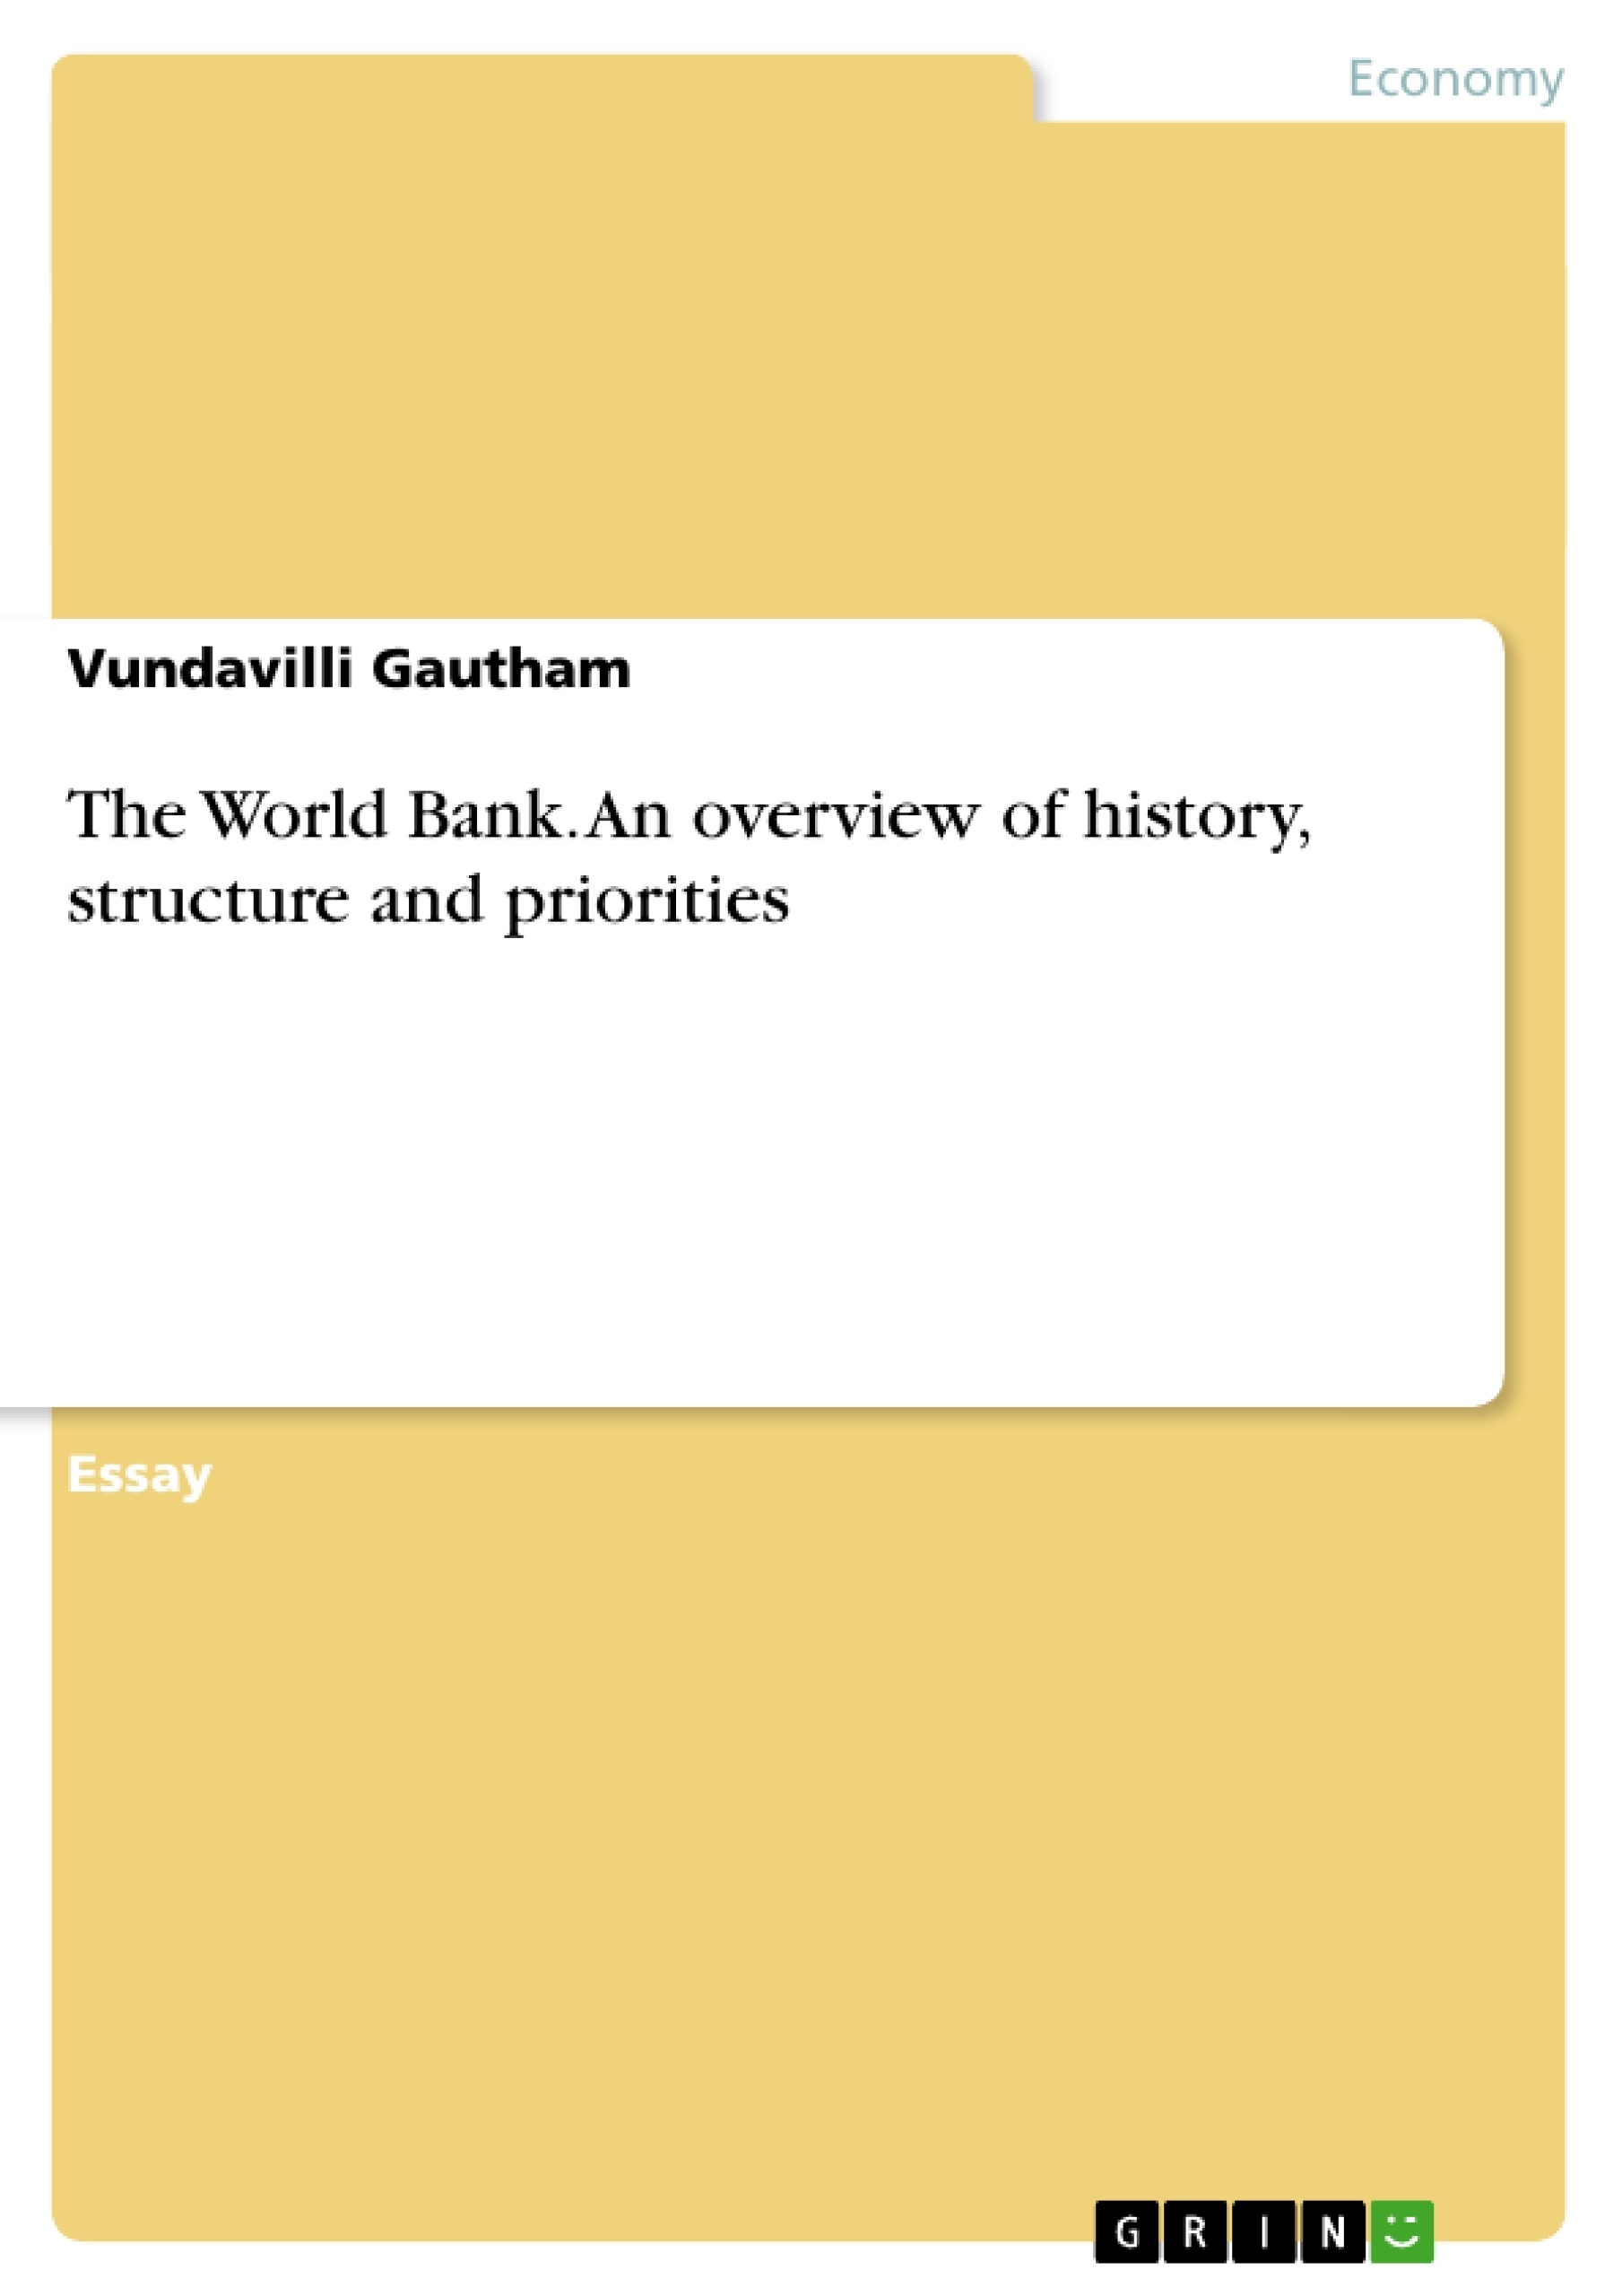 Title: The World Bank. An overview of history, structure and priorities